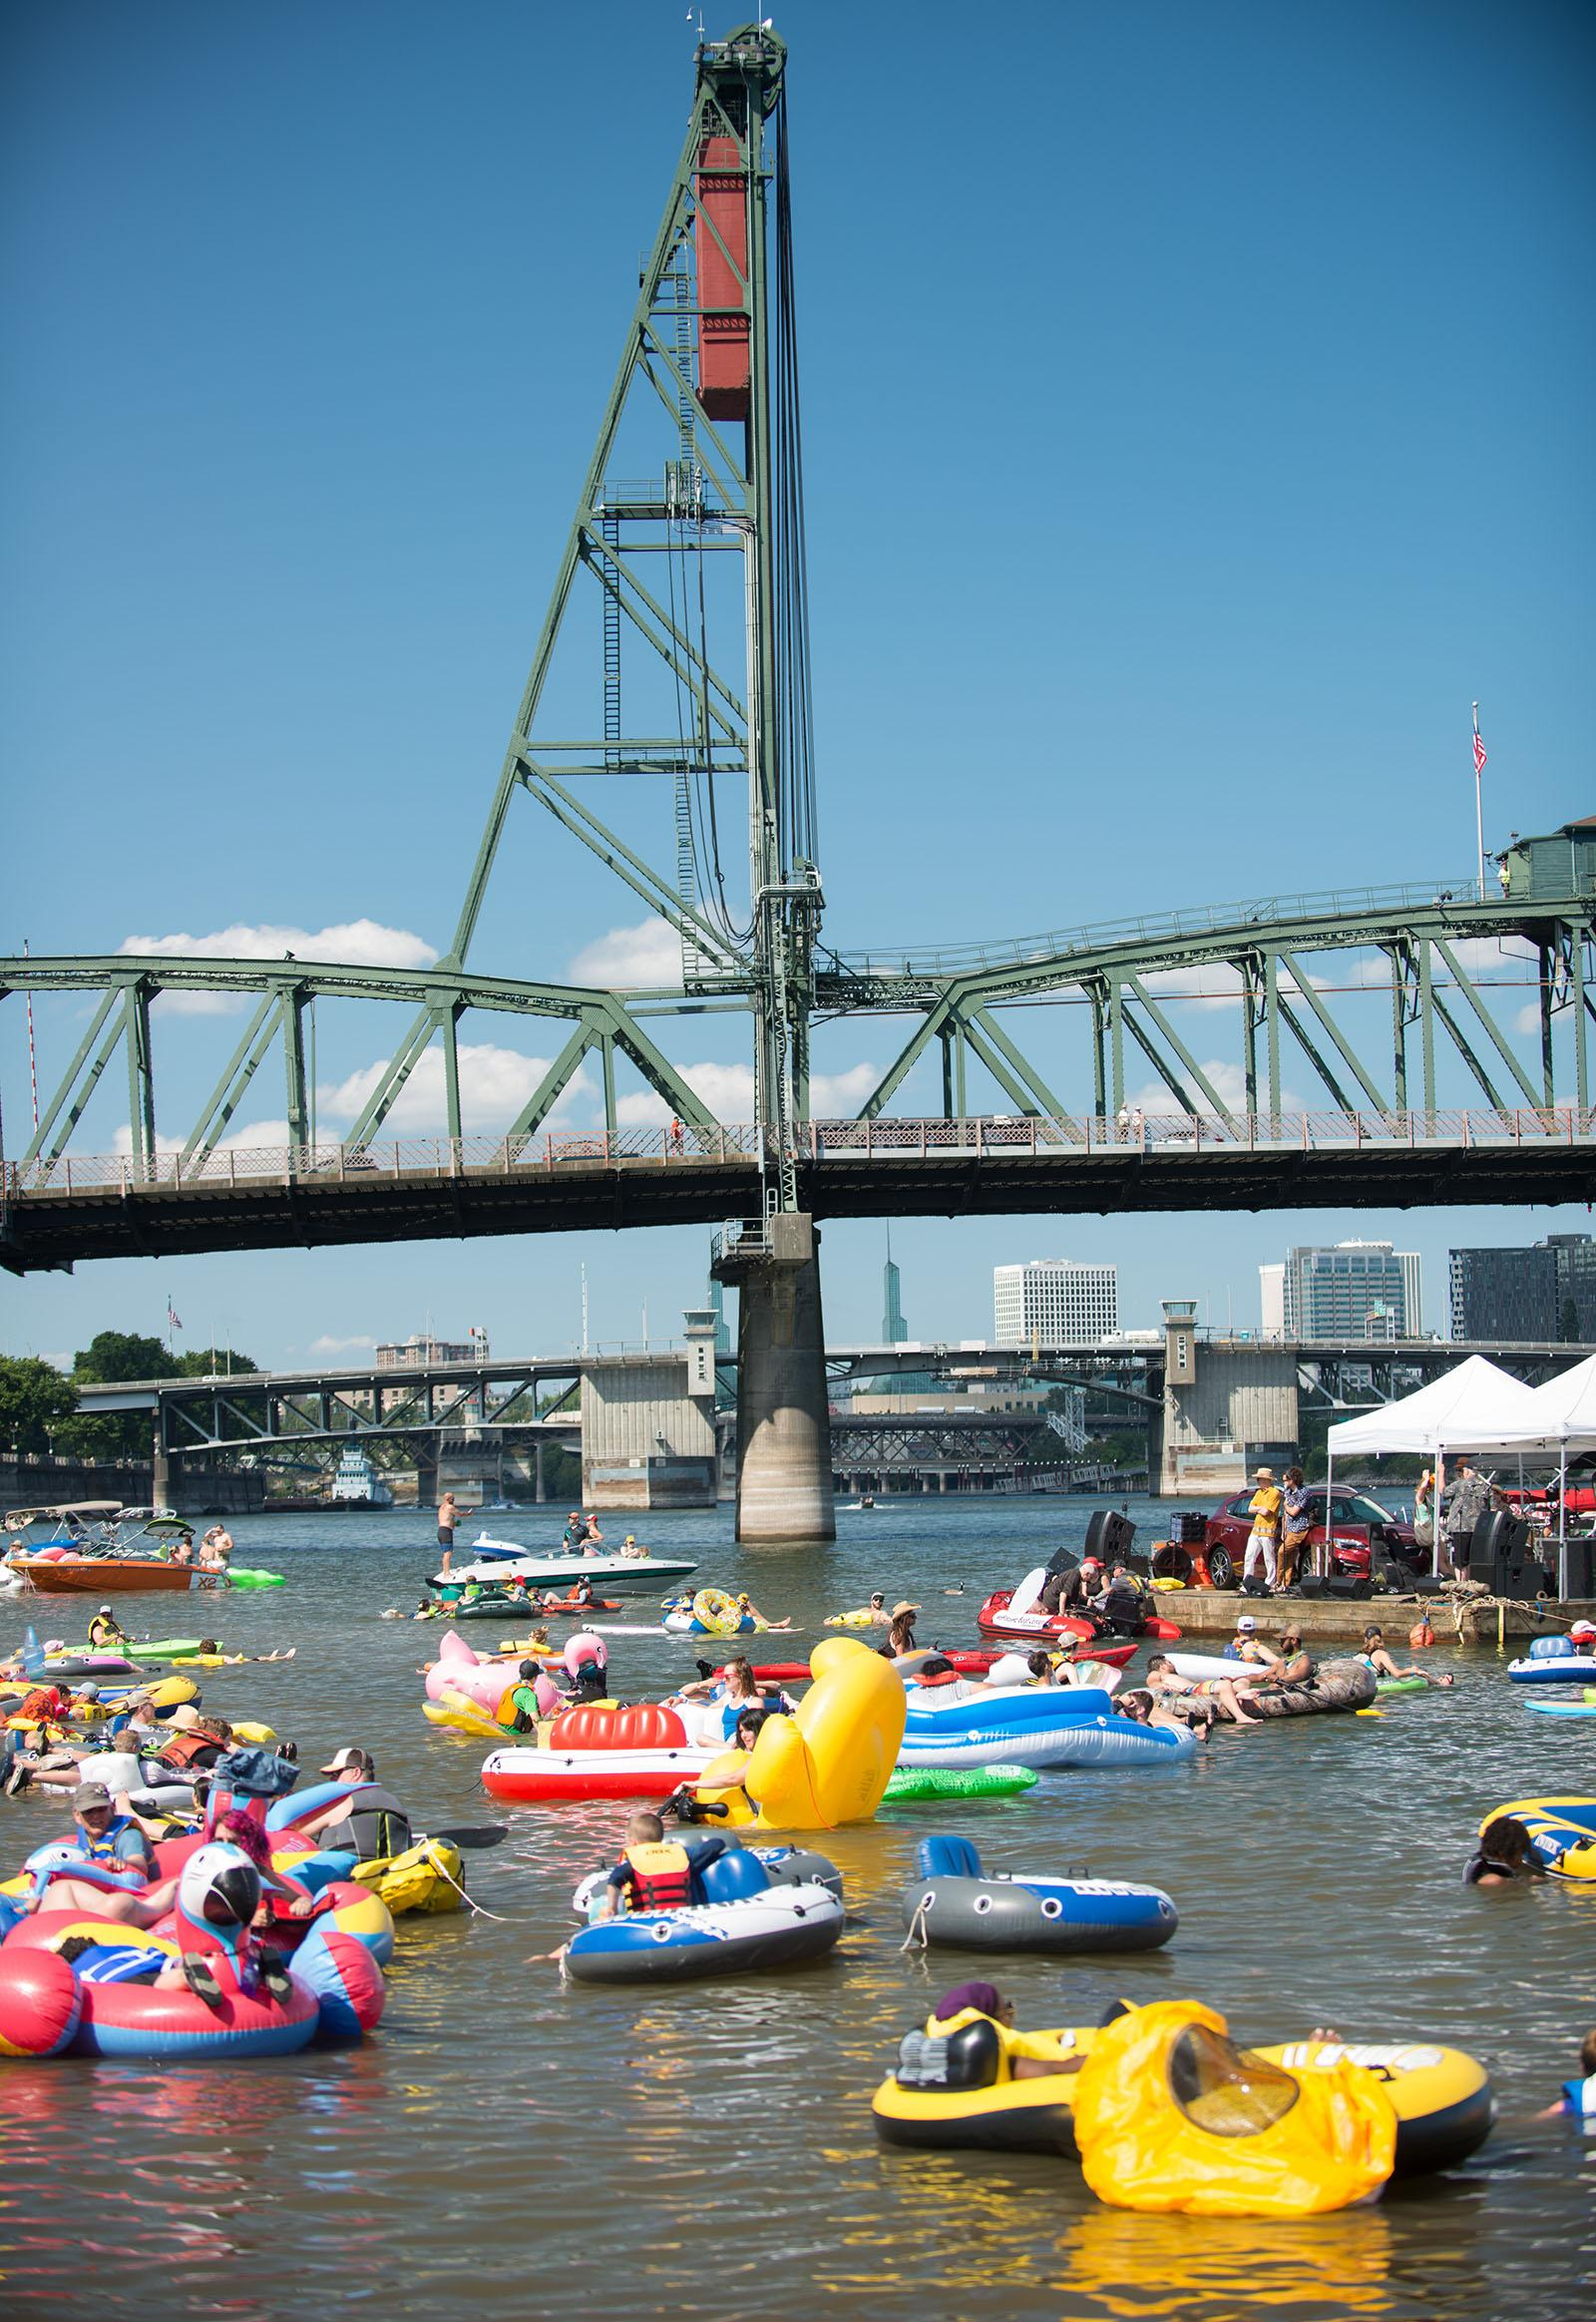 Water lovers of all ages took a dip in the Willamette River Saturday for the 7th Big Float, hosted by the  Human Access Project. This is the first year floaters were able to enjoy the new and improved Poet's Beach. (KATU photo taken July 15, 2017 by Tristan Fortsch)